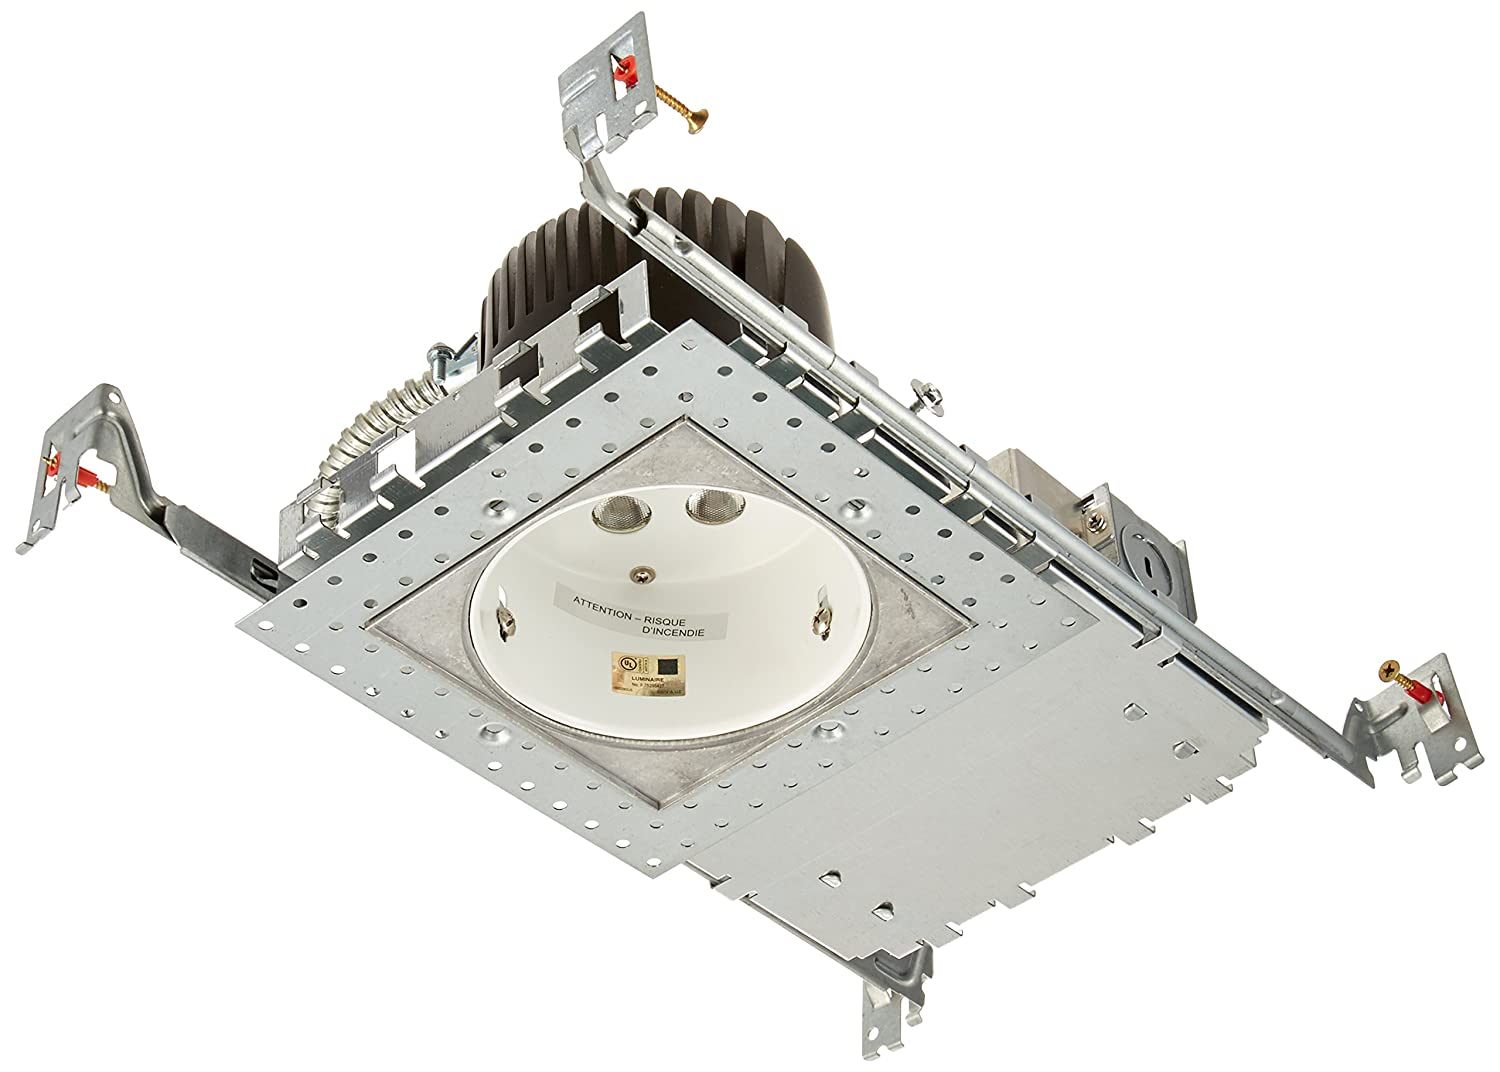 Wac lighting hr hl 4 low voltage new construction housing recessed can light - Wac Lighting Hr Led418 N Sq27 Ledme 4 Inch Recessed Downlight New Construction Invisible Trim Non Ic Housing 2700k Recessed Light Fixture Housings